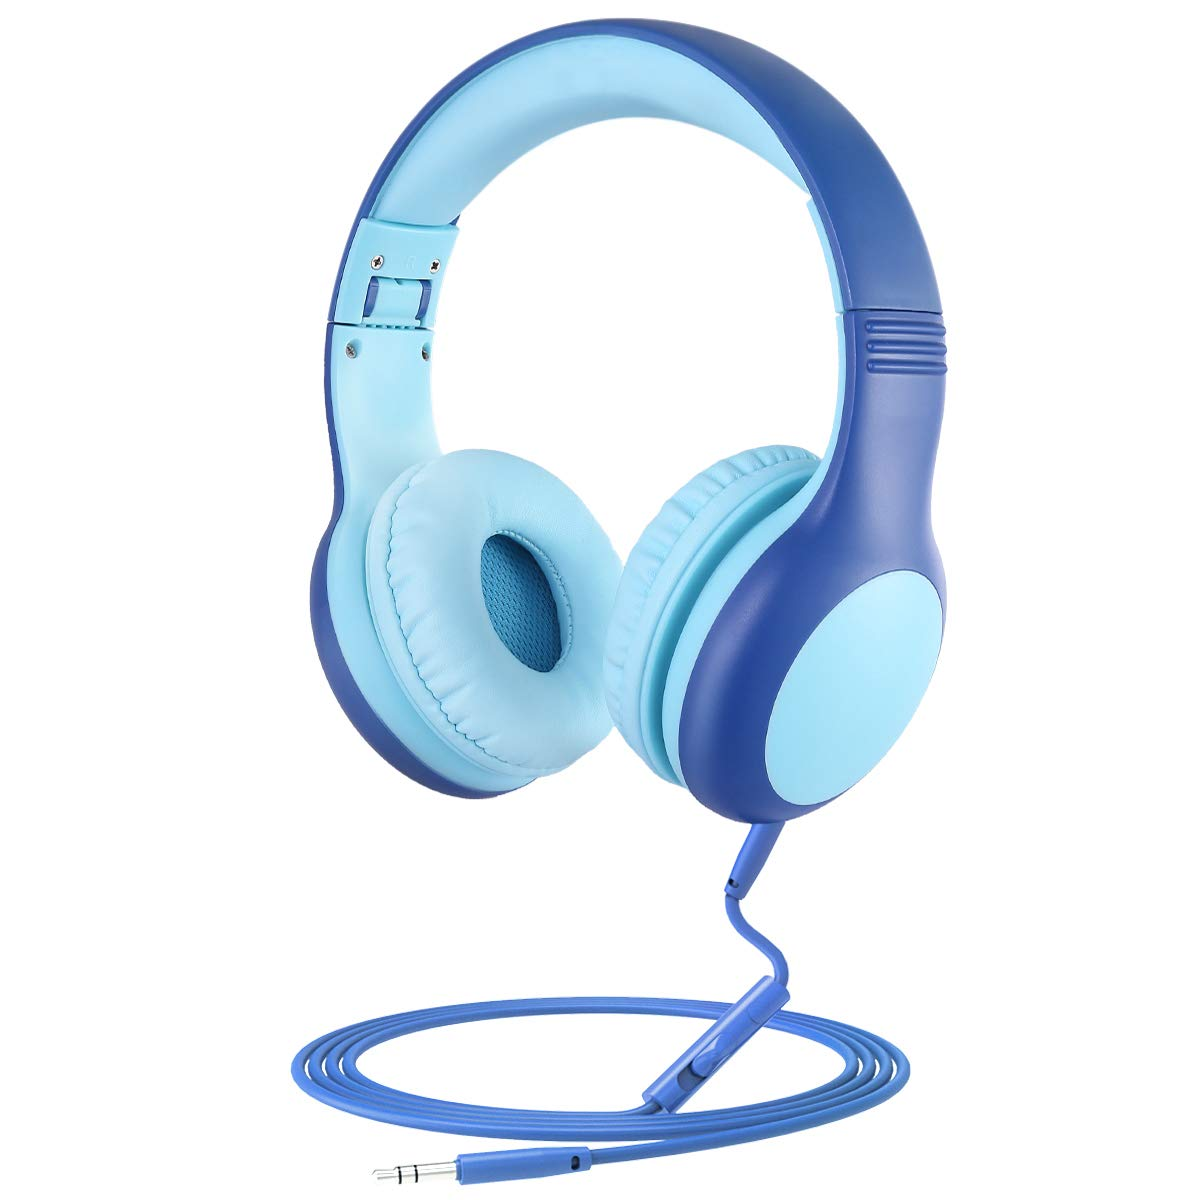 KeeKit Kids Headphones, Noise Reduction School Headphones with Audio Sharing Function, Volume Limited Hearing Protection Wired On-Ear Headsets with Tangle-Free Cord for Children, Girls, Boys Blue